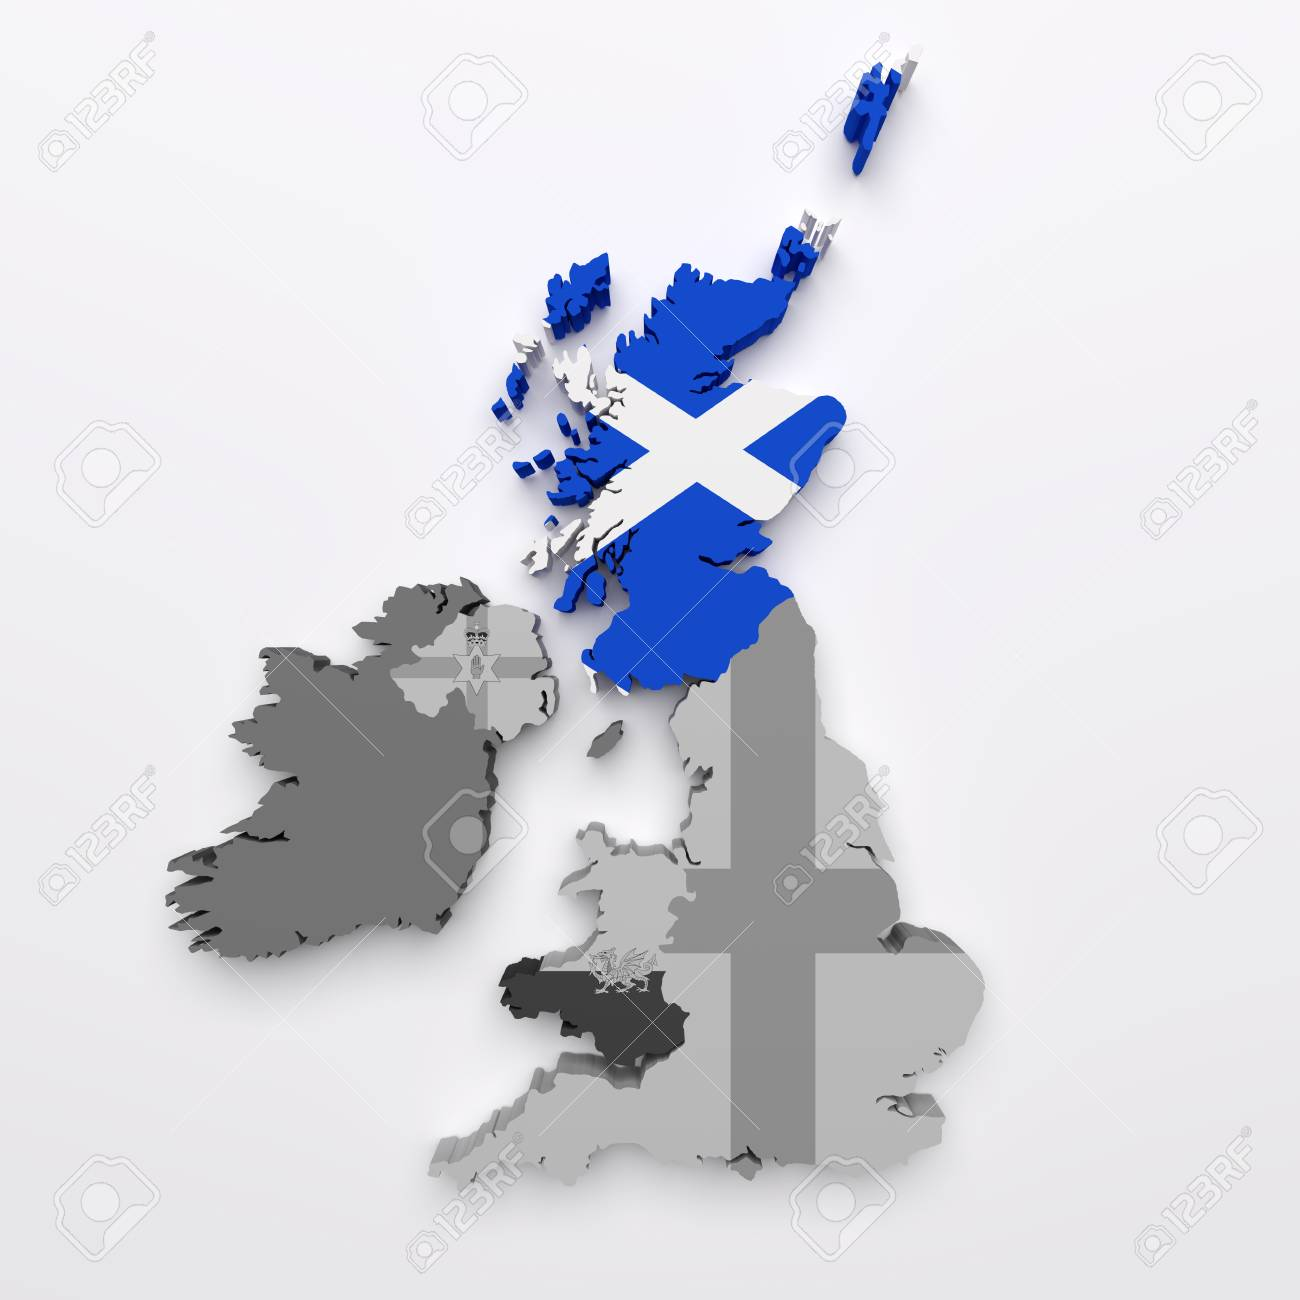 3d Rendering Of All The United Kingdom Countries Maps And Flags Scotland Flag In Color